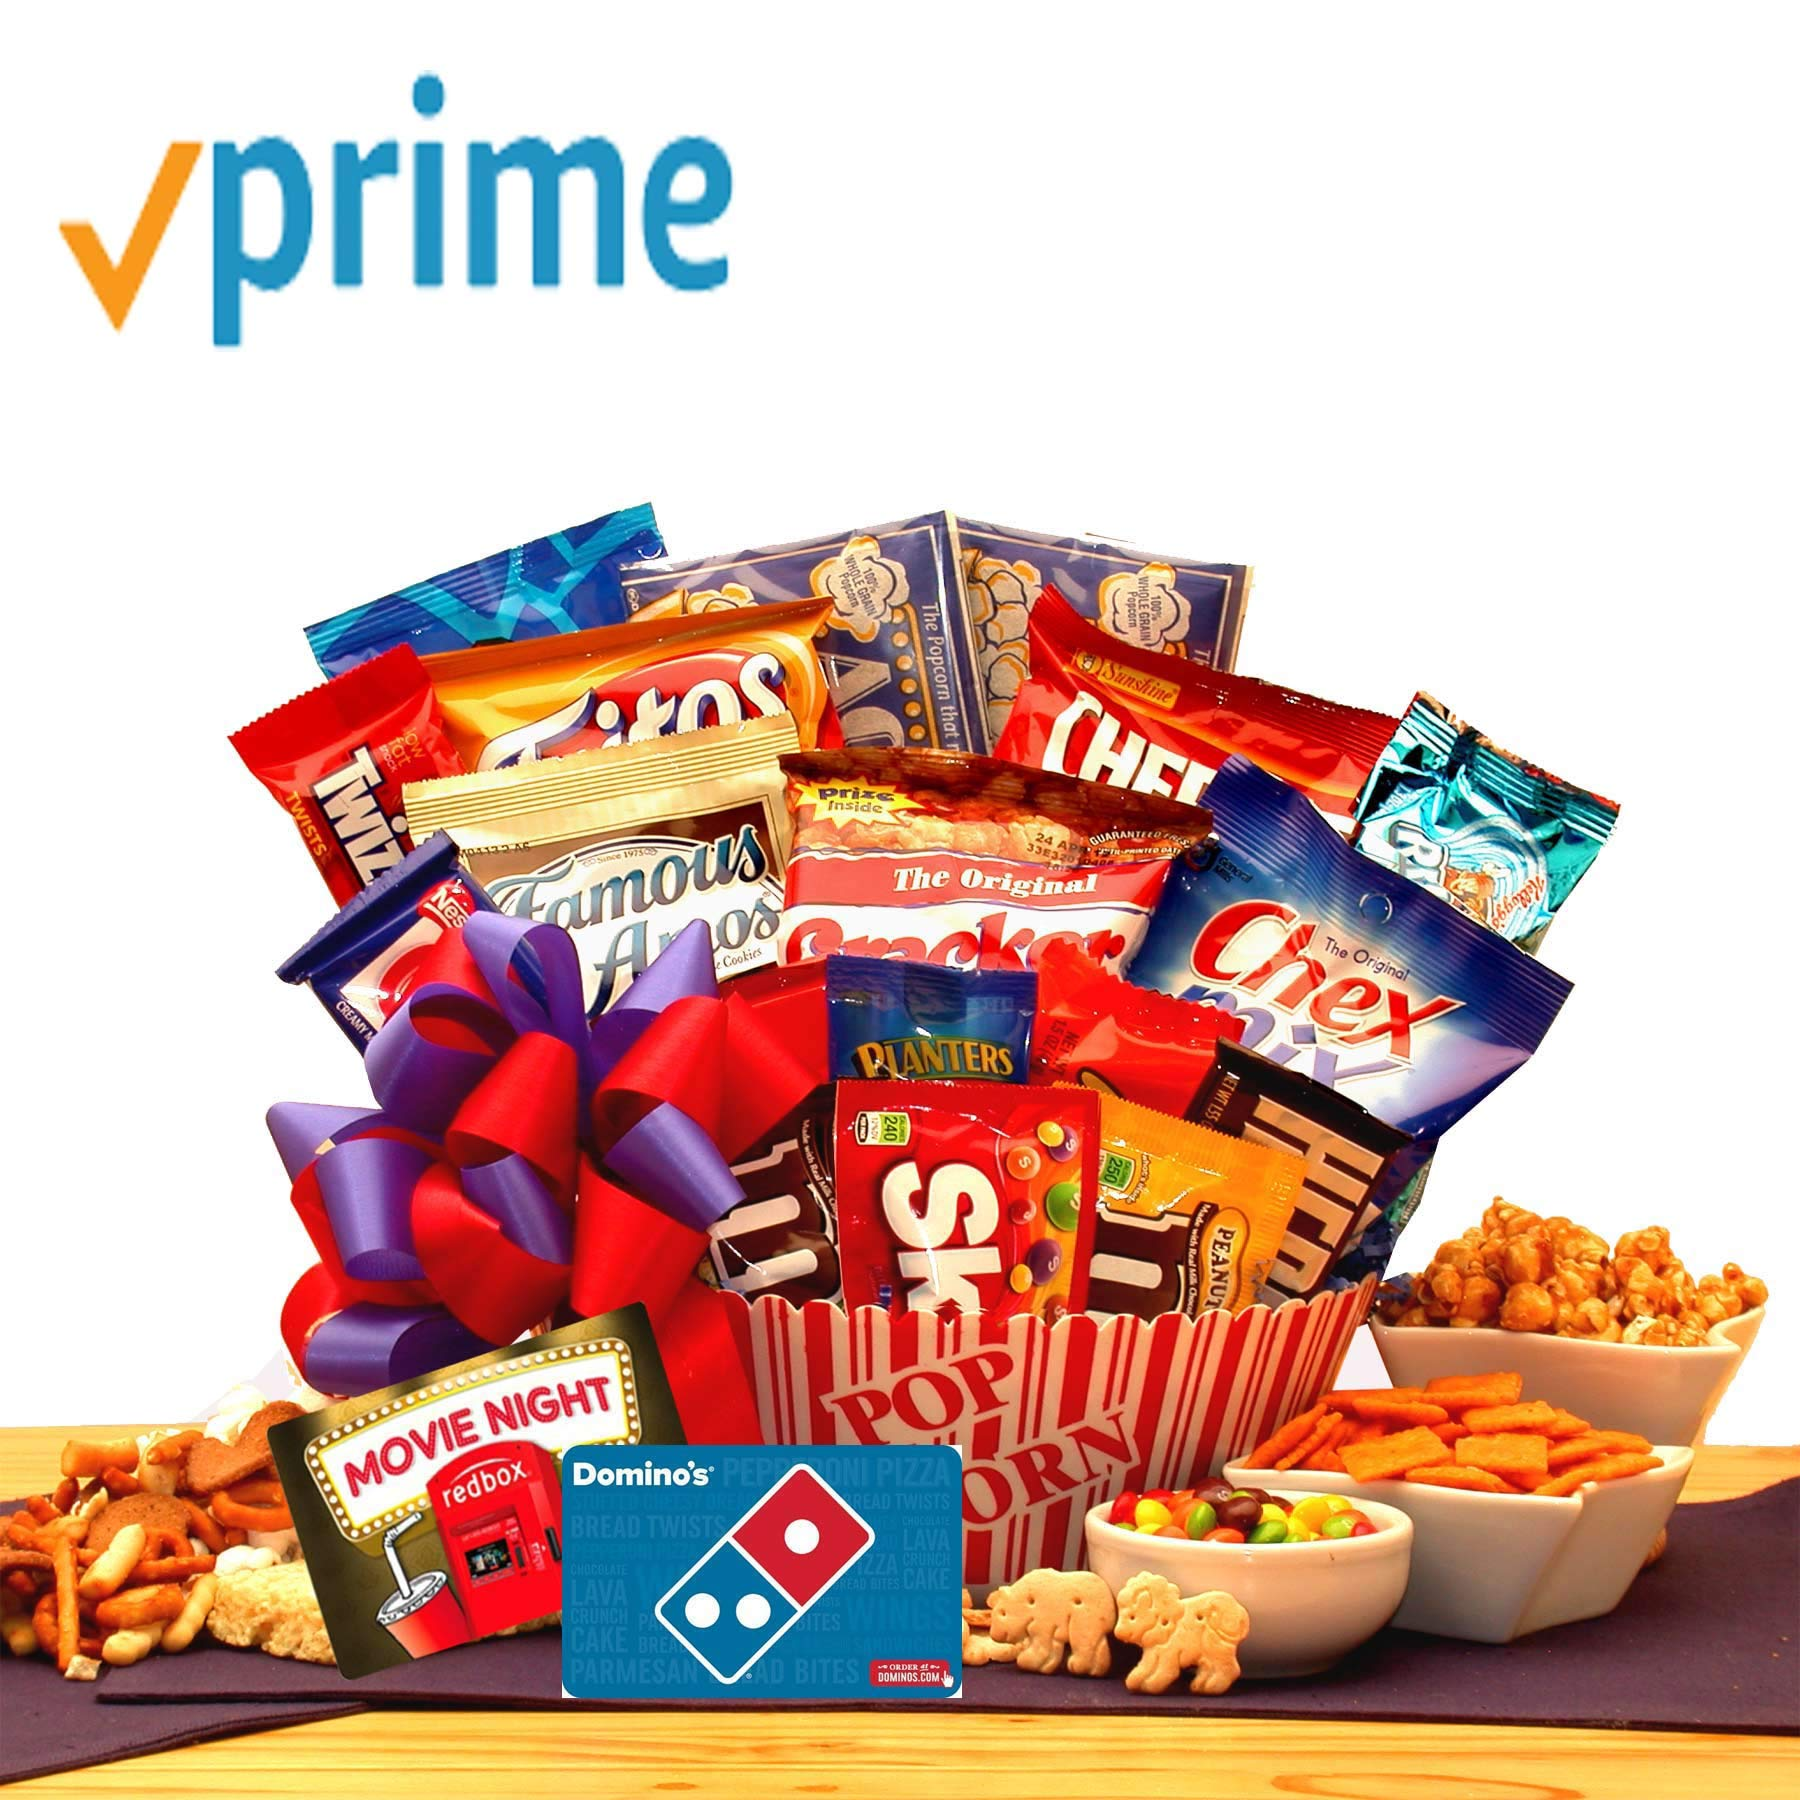 Movie Lovers Ultimate Movie Night Gift with Redbox Card, Dominos Pizza gift card, popcorn, chocolates, snacks and more by GiftBasketsAssociates